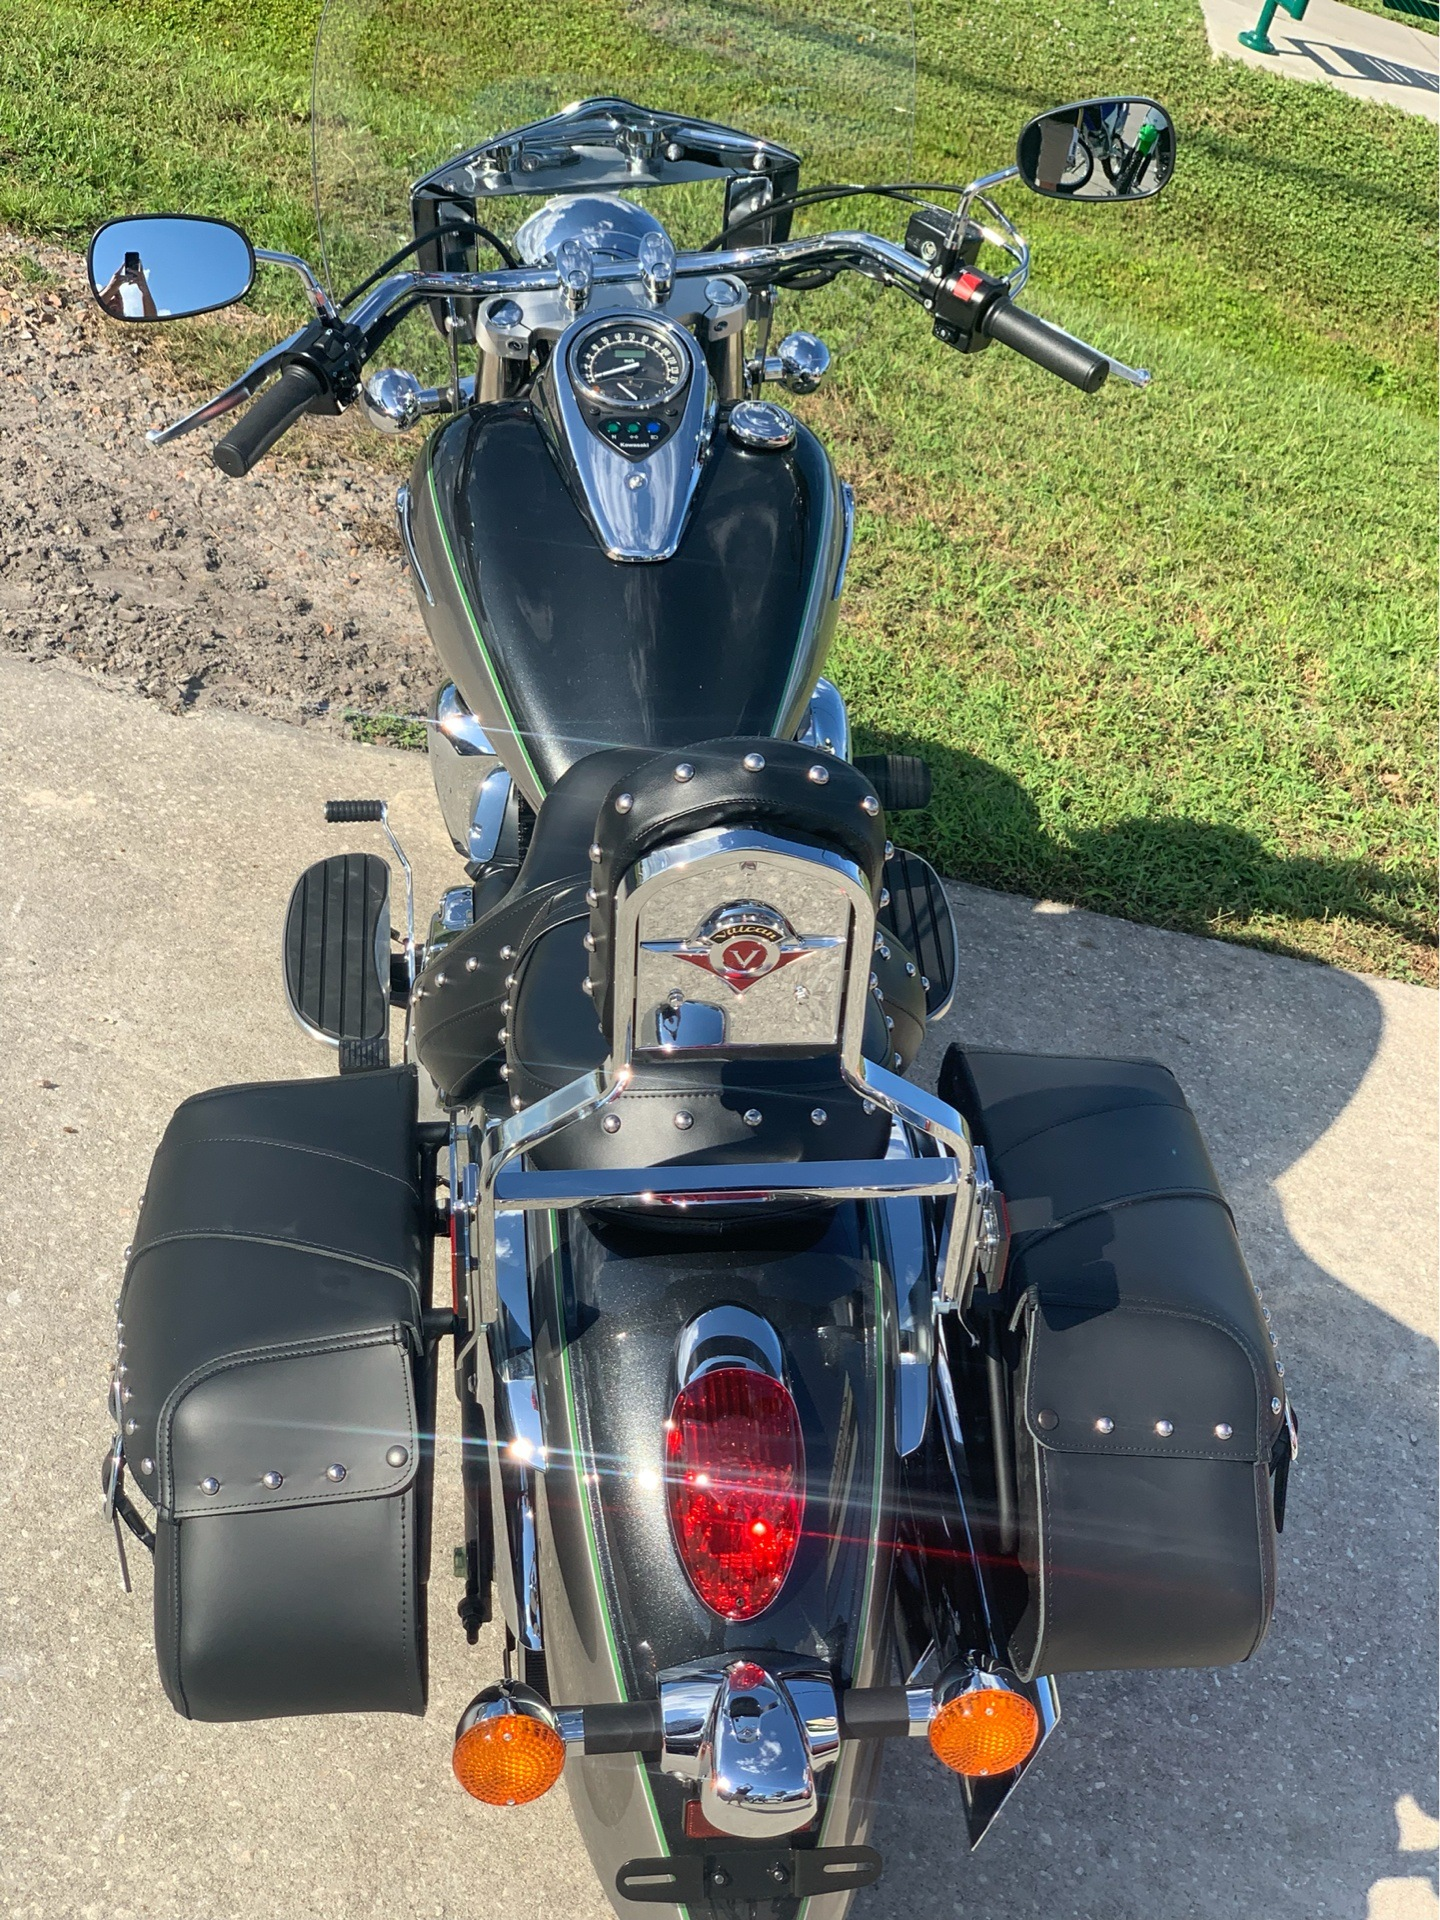 2020 Kawasaki Vulcan 900 Classic LT in Orlando, Florida - Photo 10